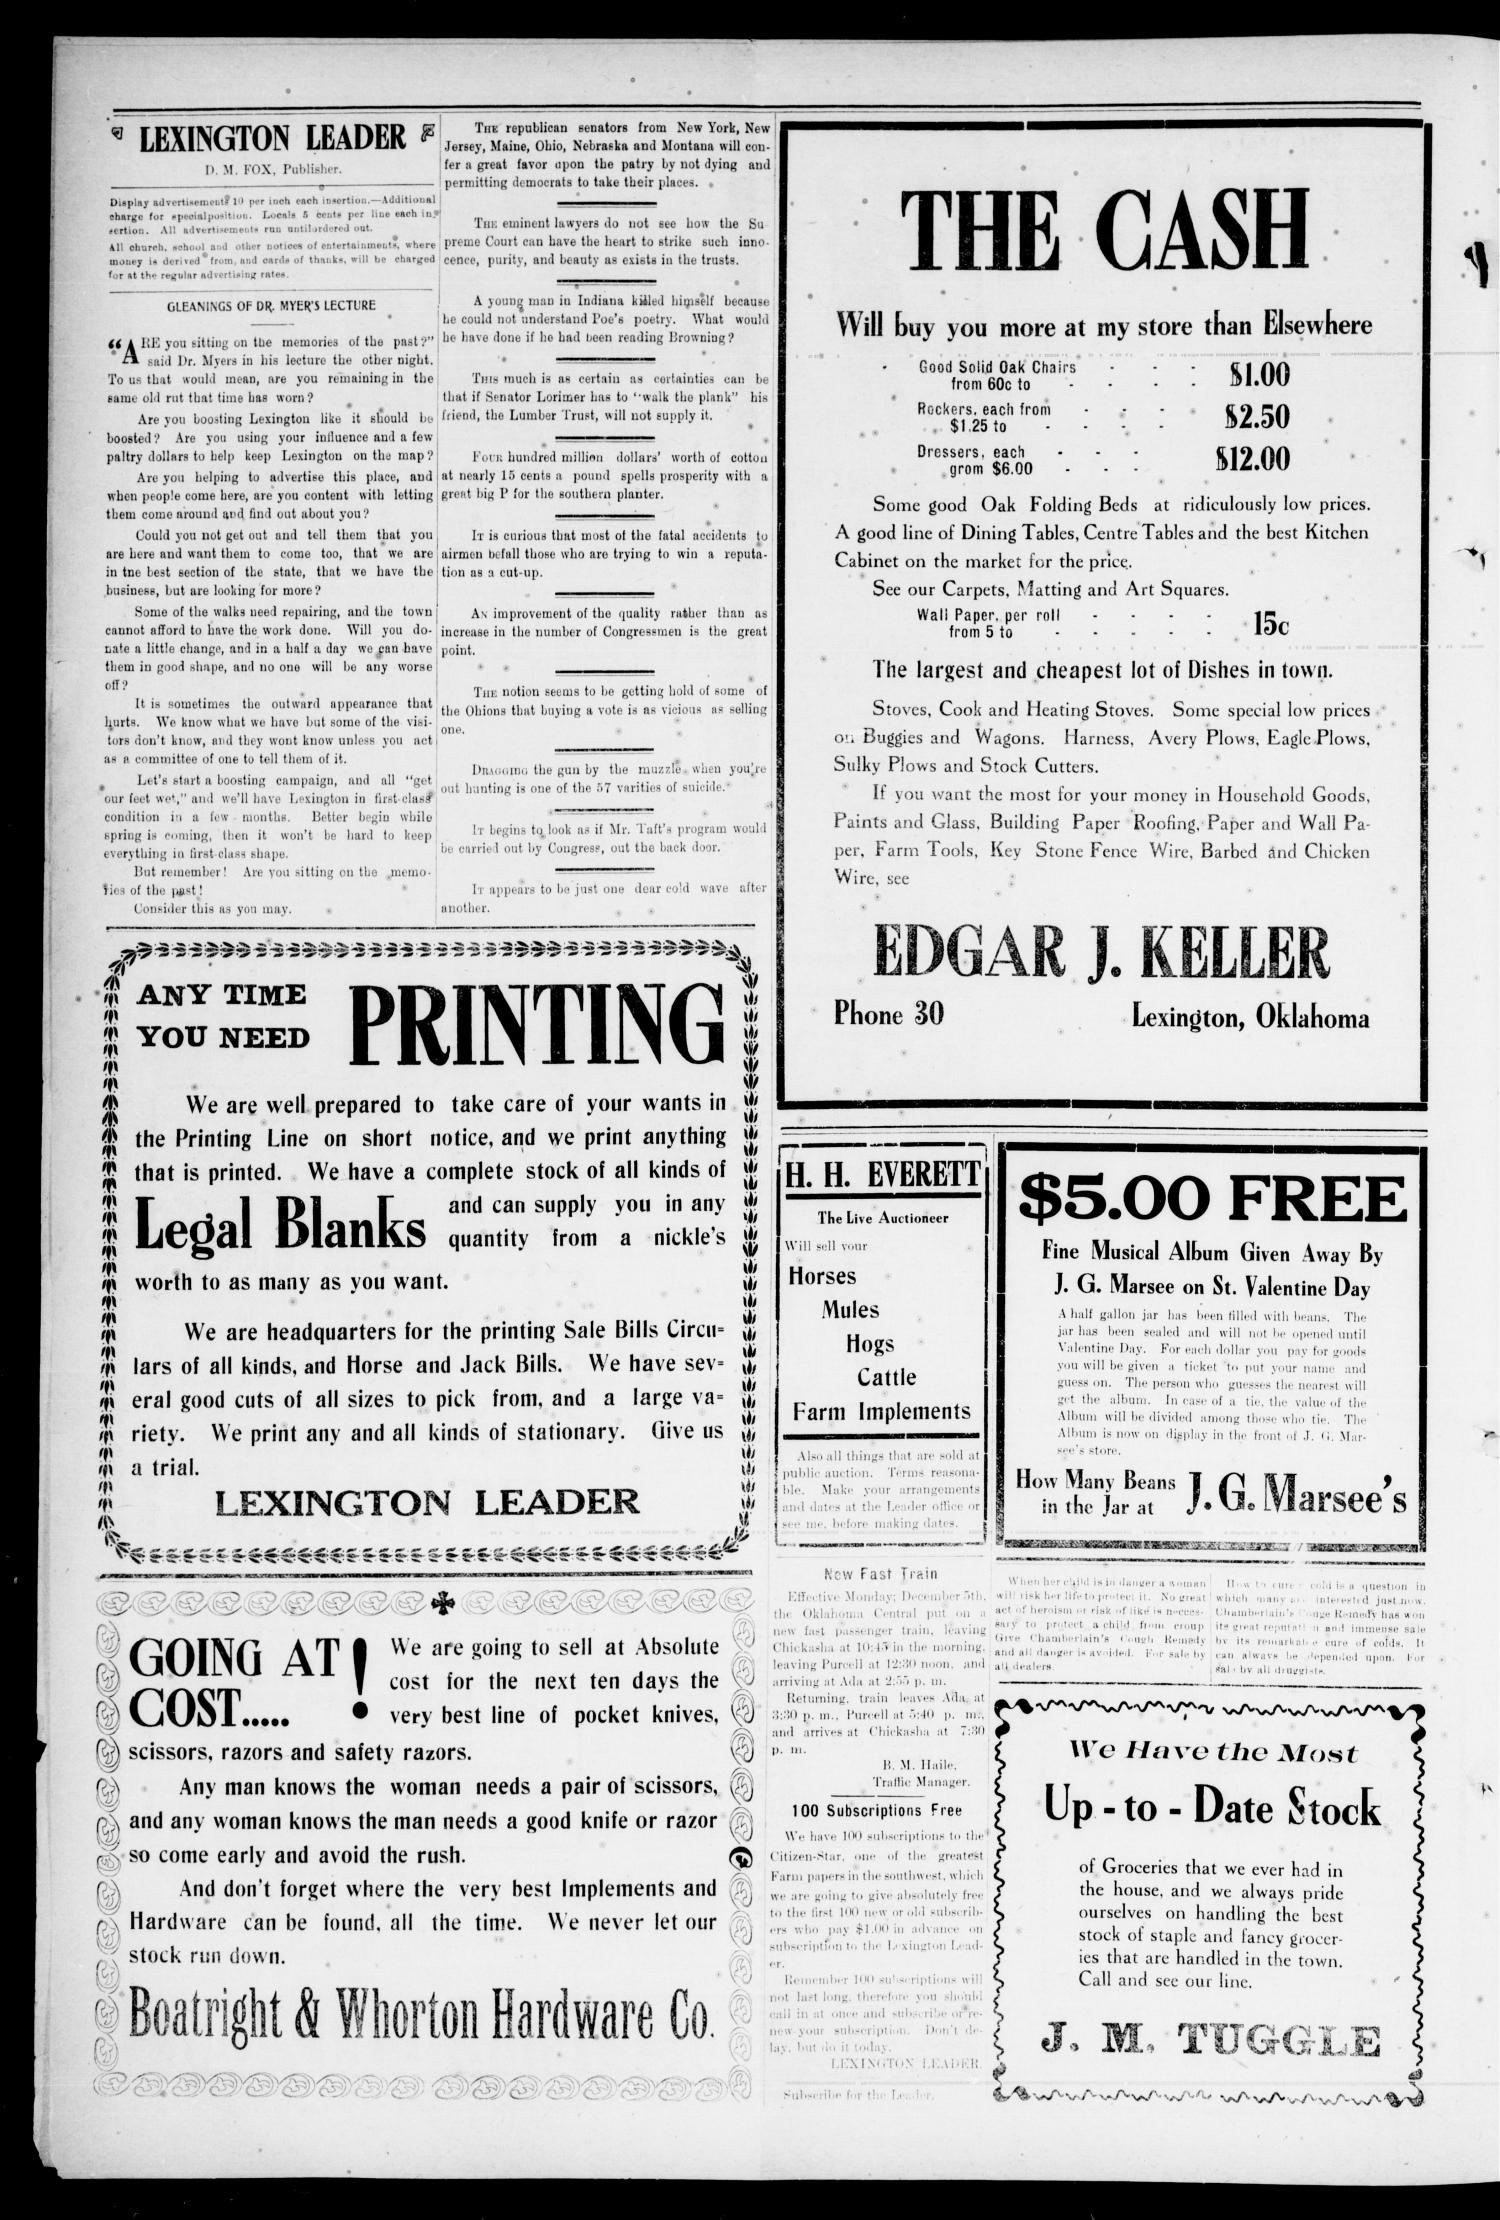 Lexington Leader. (Lexington, Okla.), Vol. 20, No. 20, Ed. 1 Friday, February 3, 1911                                                                                                      [Sequence #]: 4 of 8